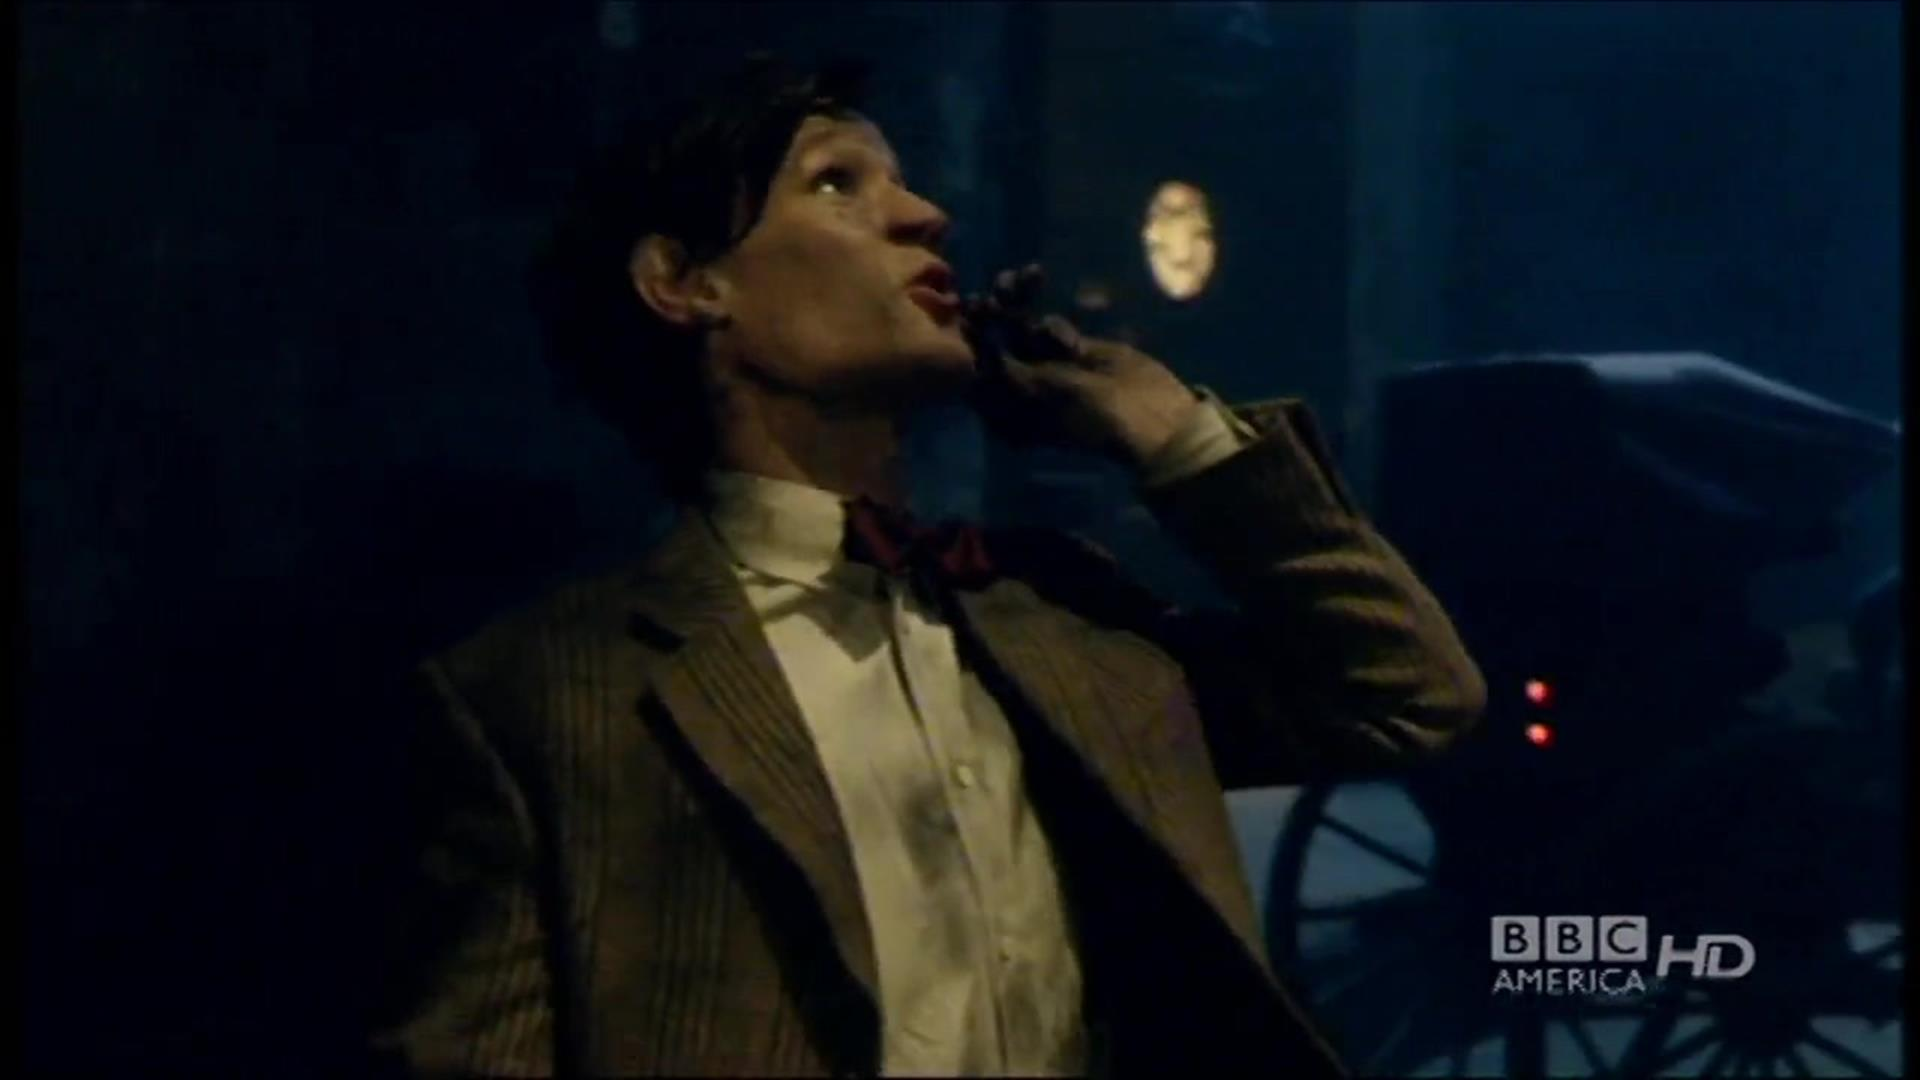 A Christmas Carol - Preview Clip 3 | Watch Doctor Who Video Extras | BBC America